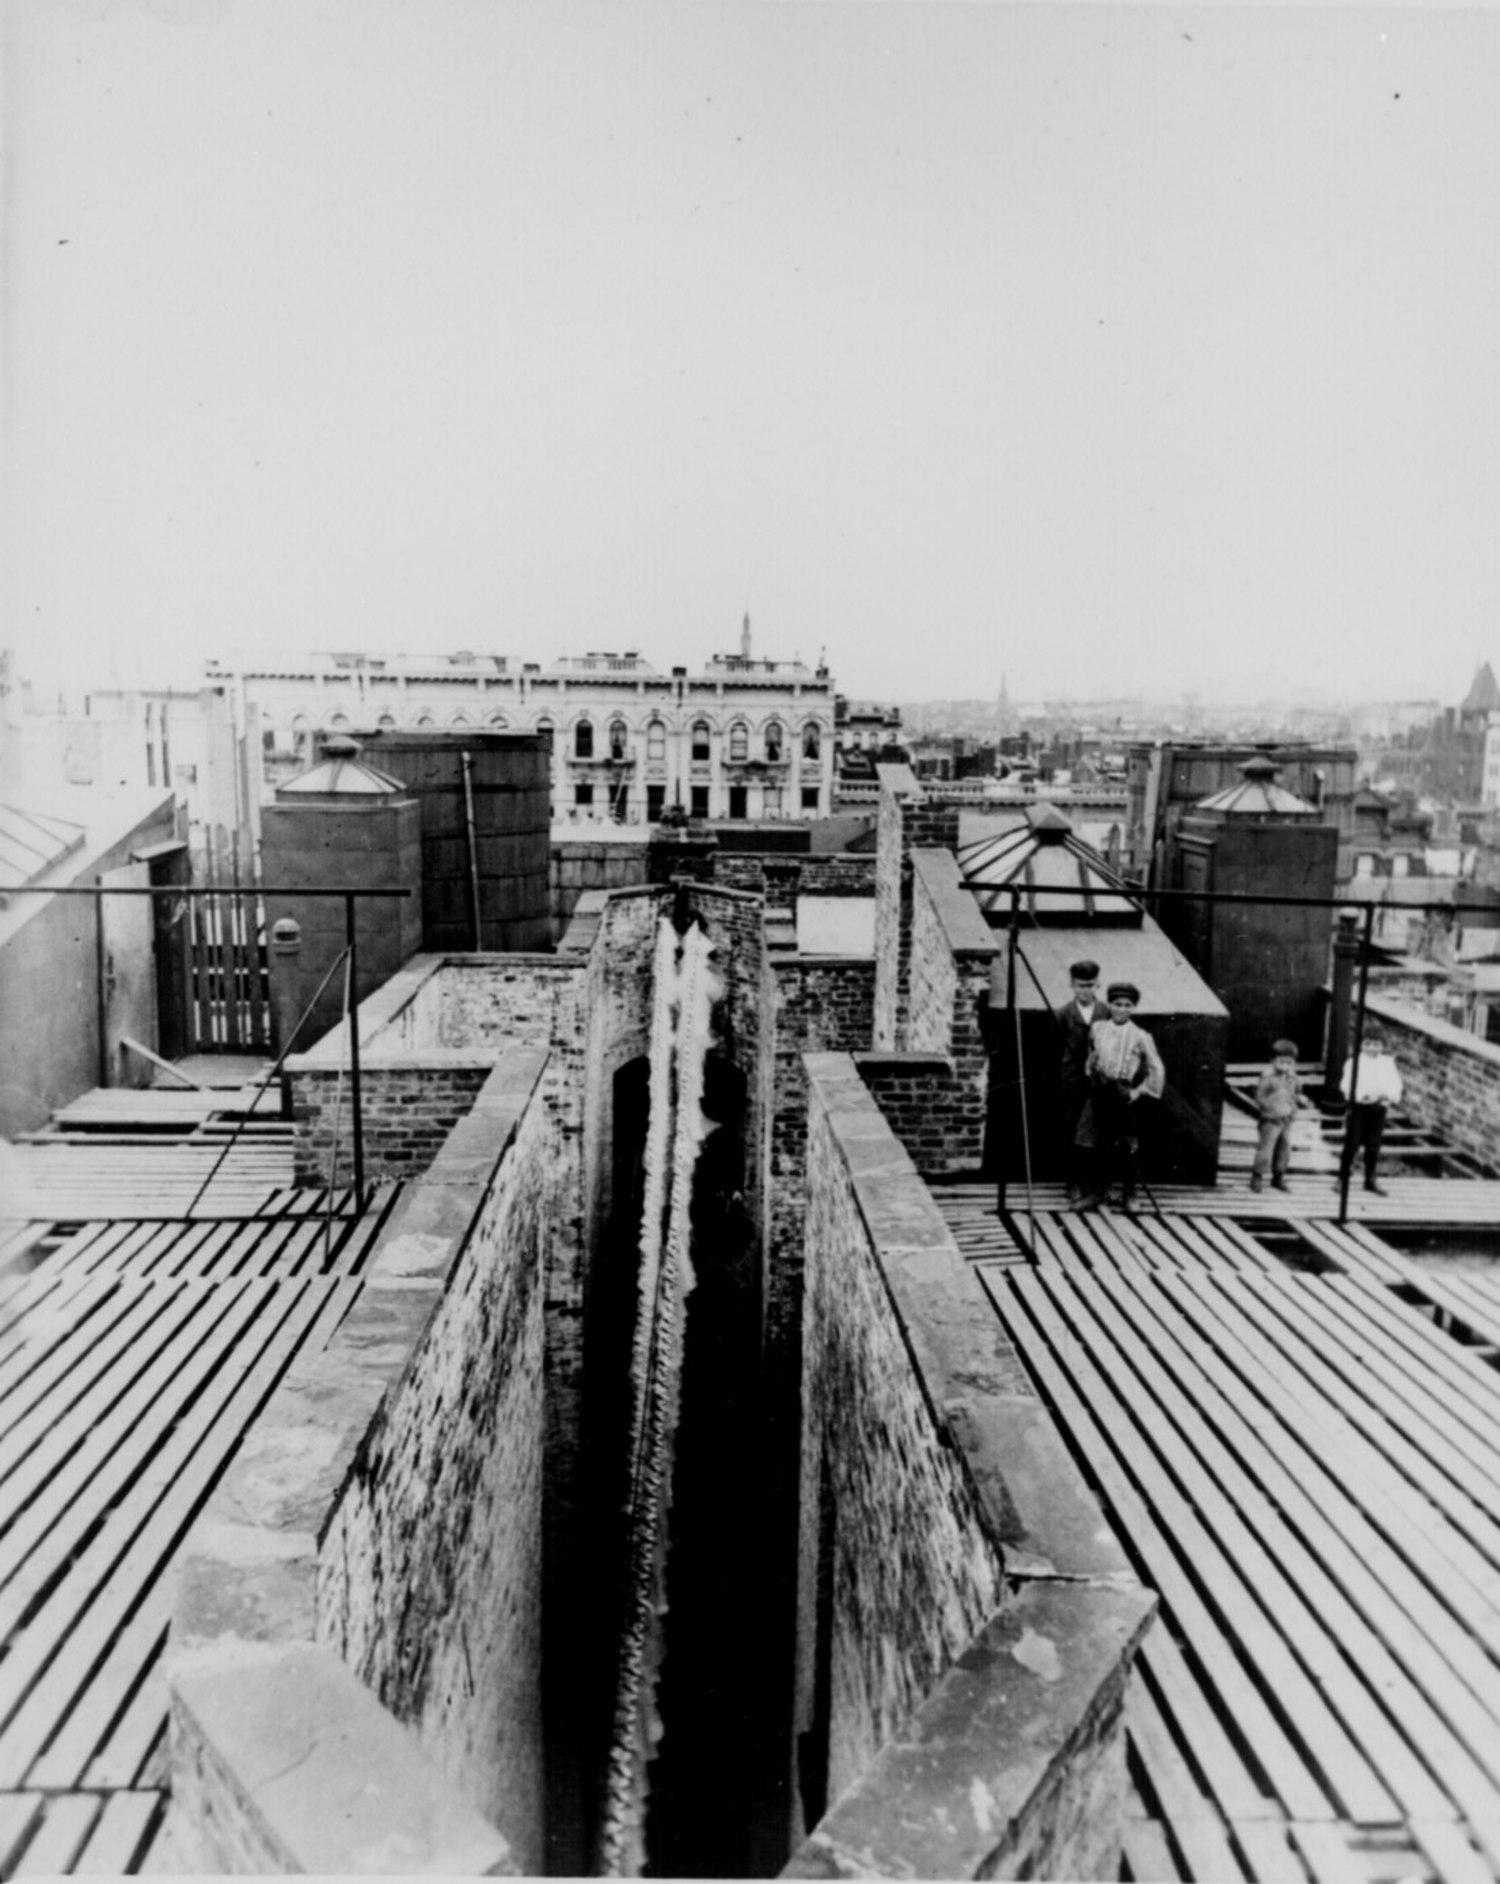 Airshaft of a dumbbell tenement, New York City, taken from the roof